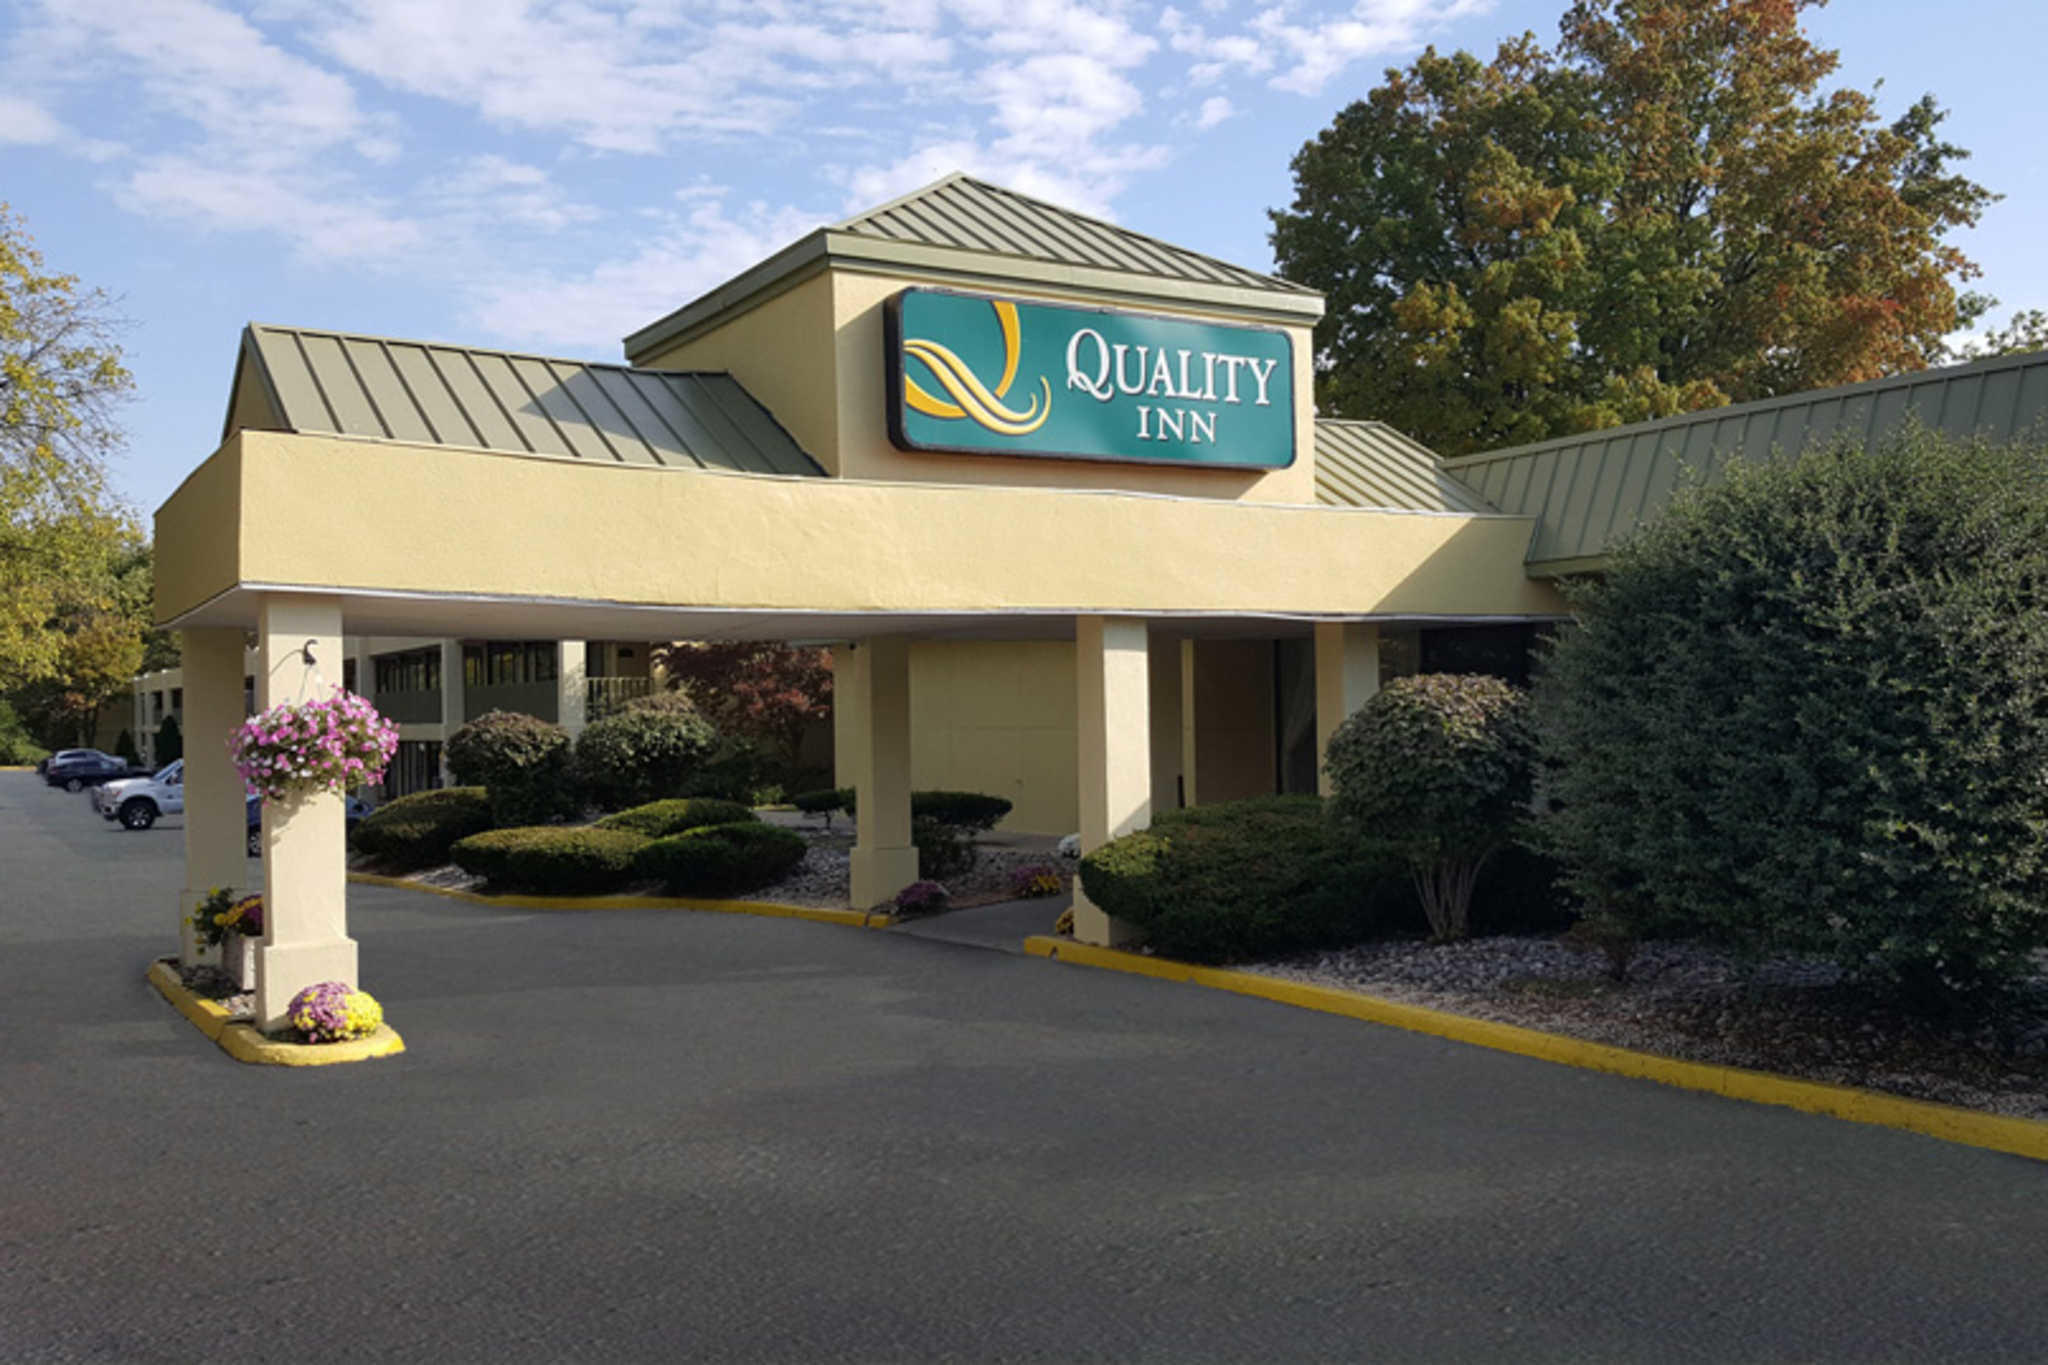 Quality Inn Pottstown image 1